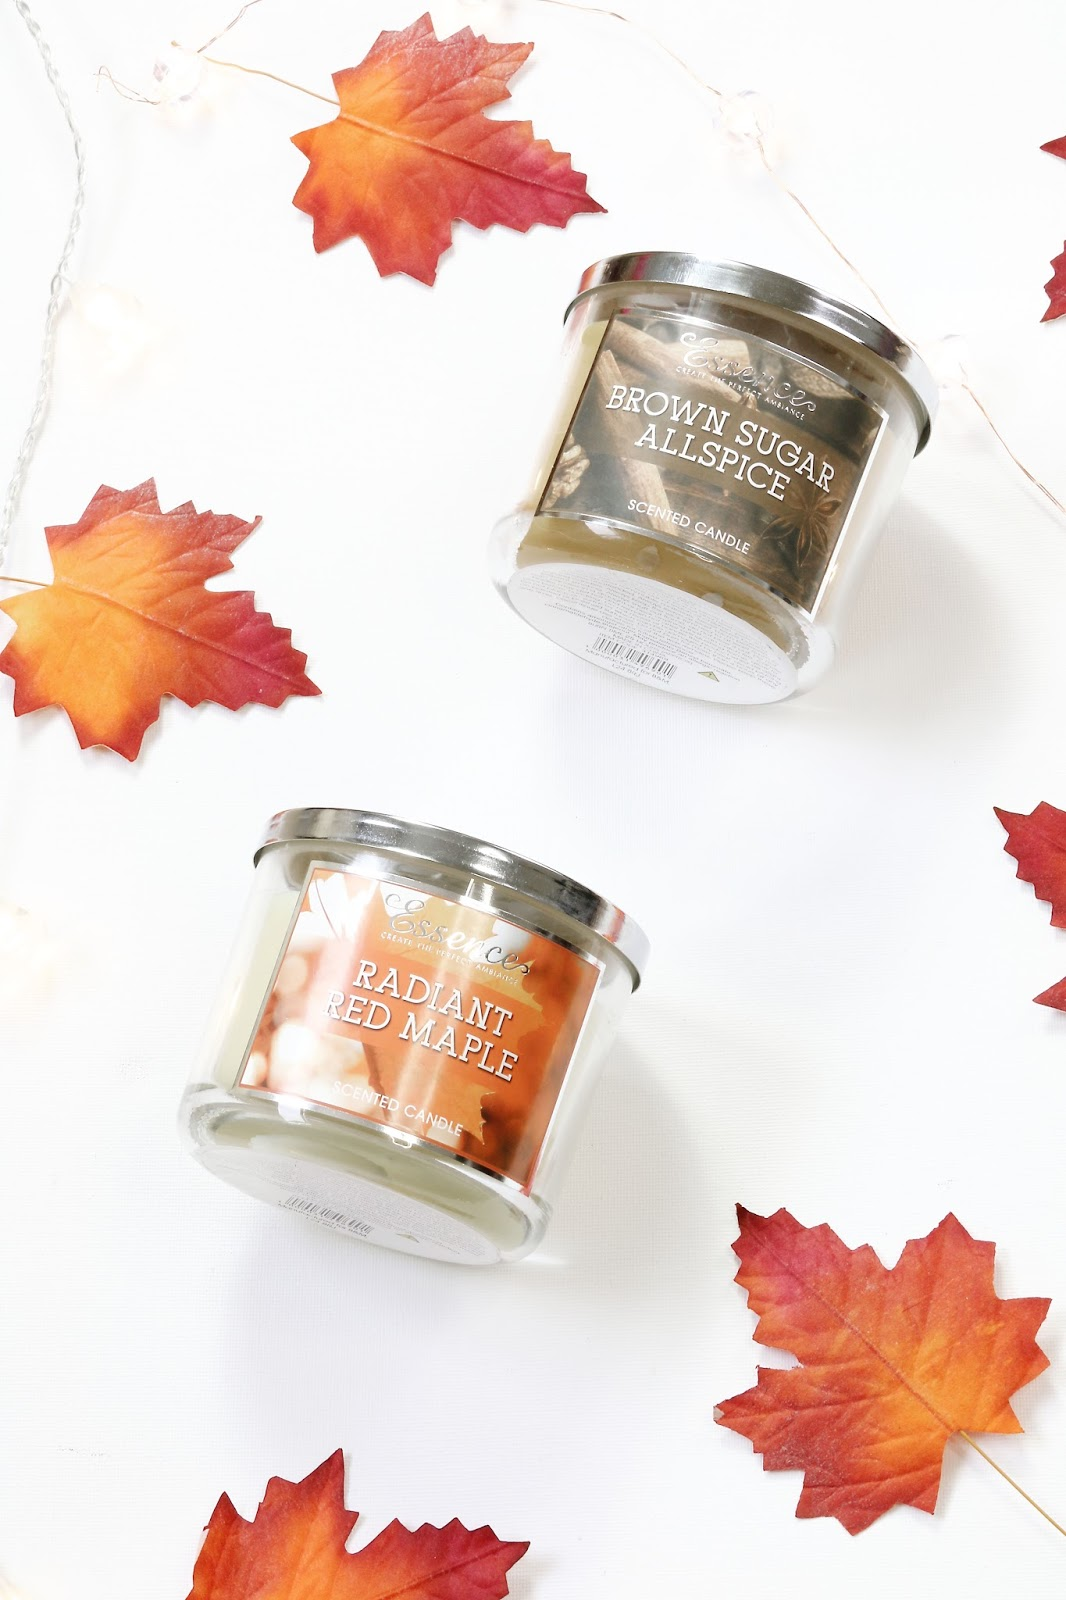 Lifestyle, Home, Candles, Homeware, Bath and Body Works, Bath and Body works dupe